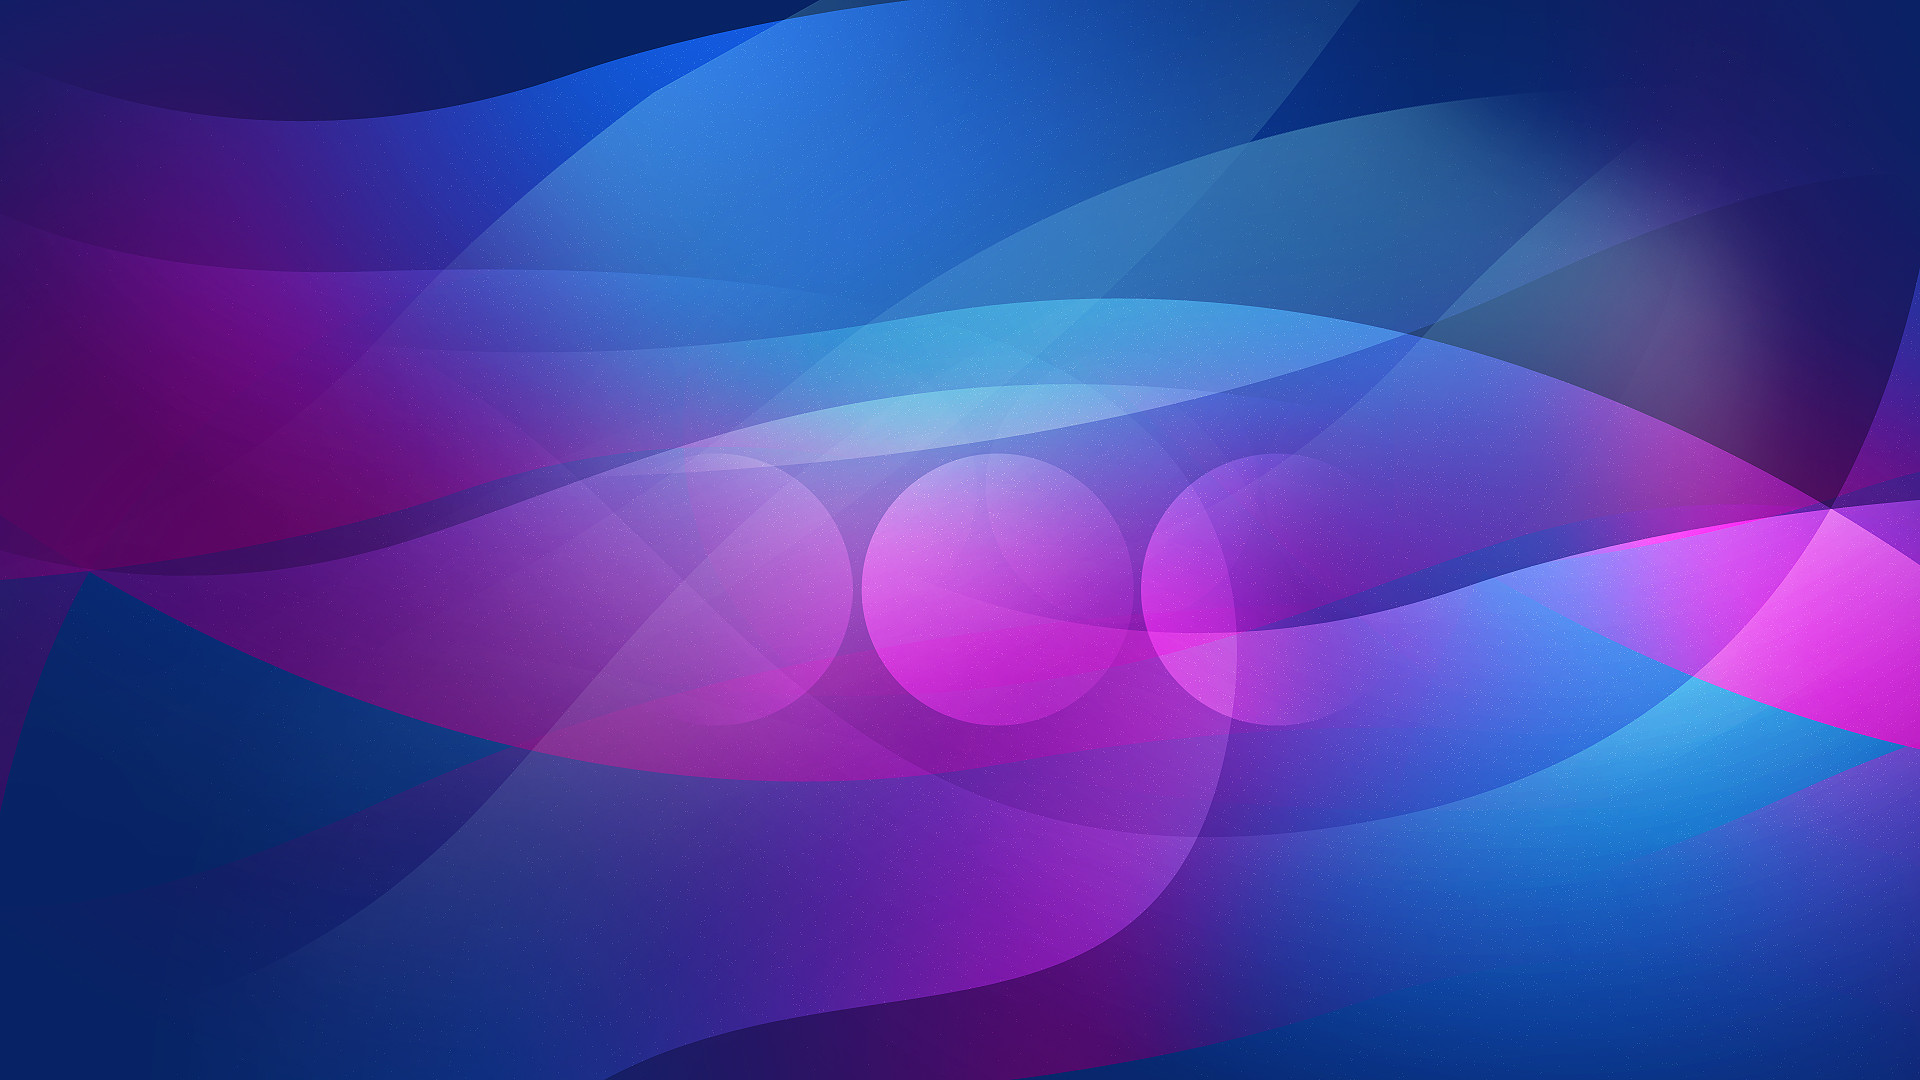 Wallpaper, Abstract, Blue, Circles, Pink, Line, Cool, Colourful,